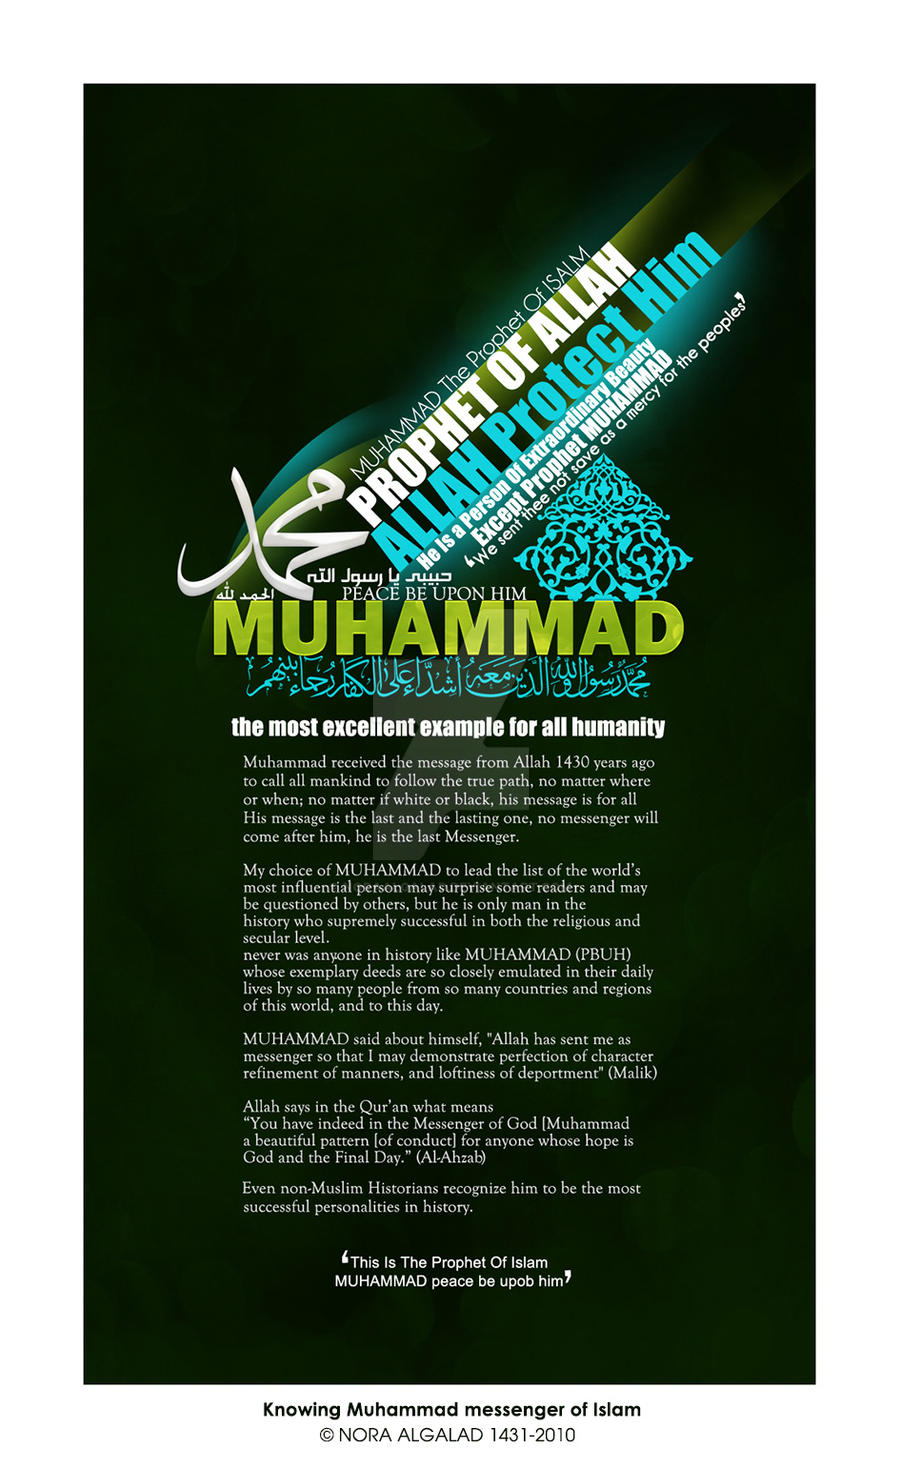 MUHAMMAD prophet of Islam by NoraAlgalad